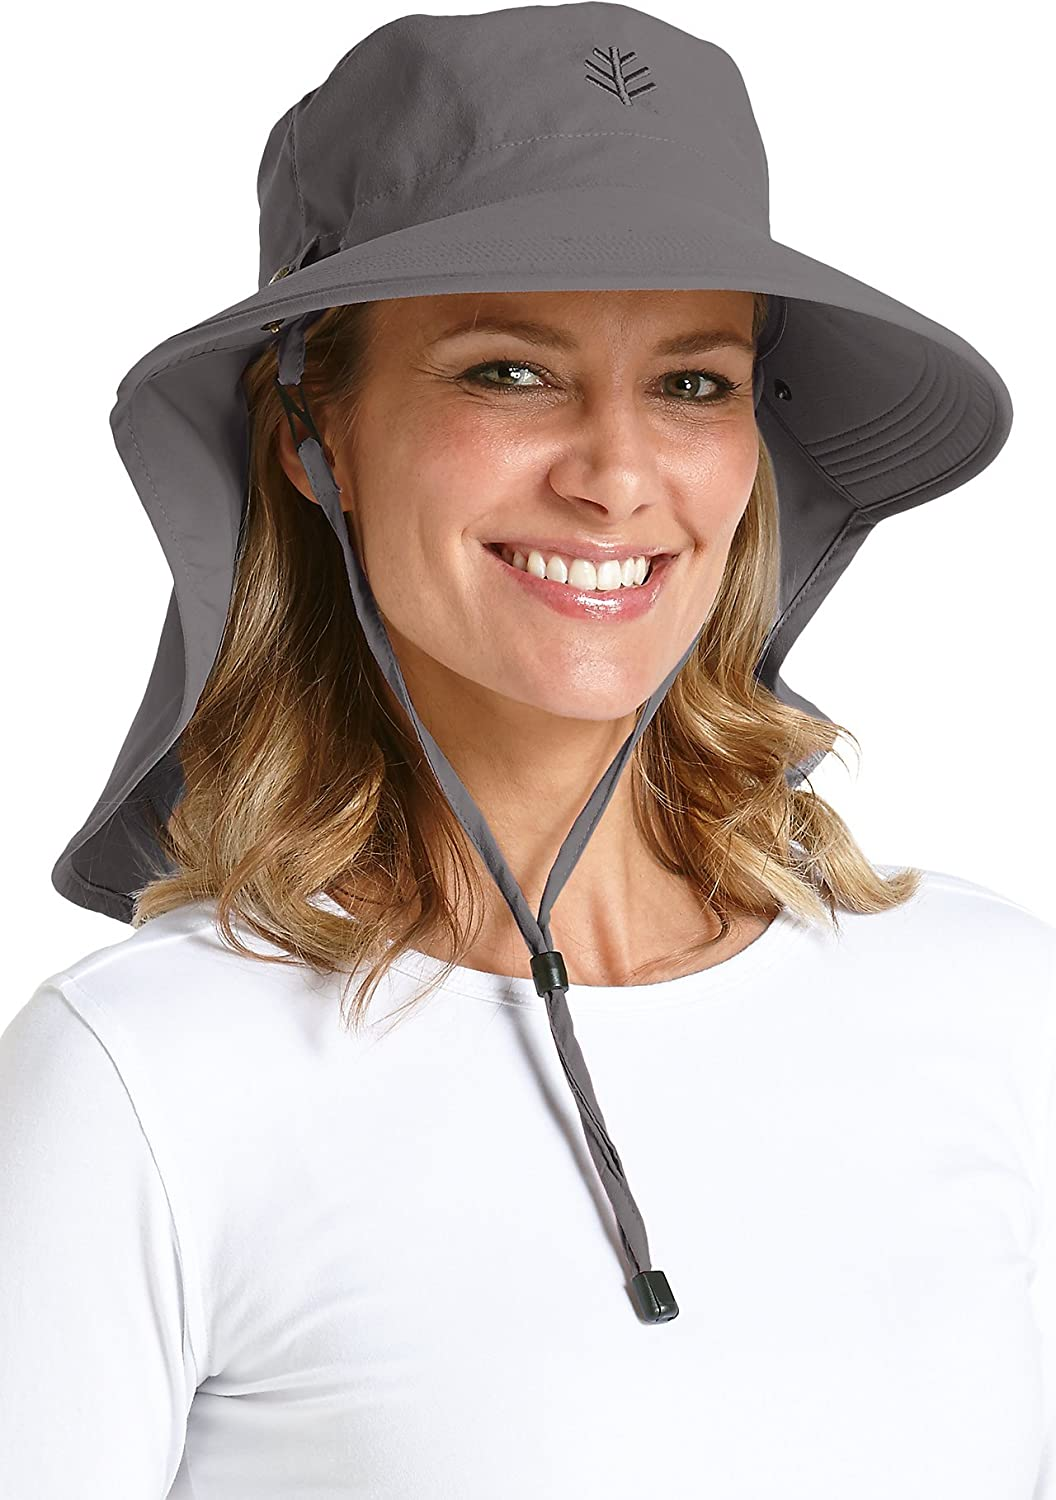 Coolibar UPF 50+ Unisex Ultra Sun Hat - Sun Protective (One Size- Carbon)  at Amazon Women s Clothing store  1490ae793ea